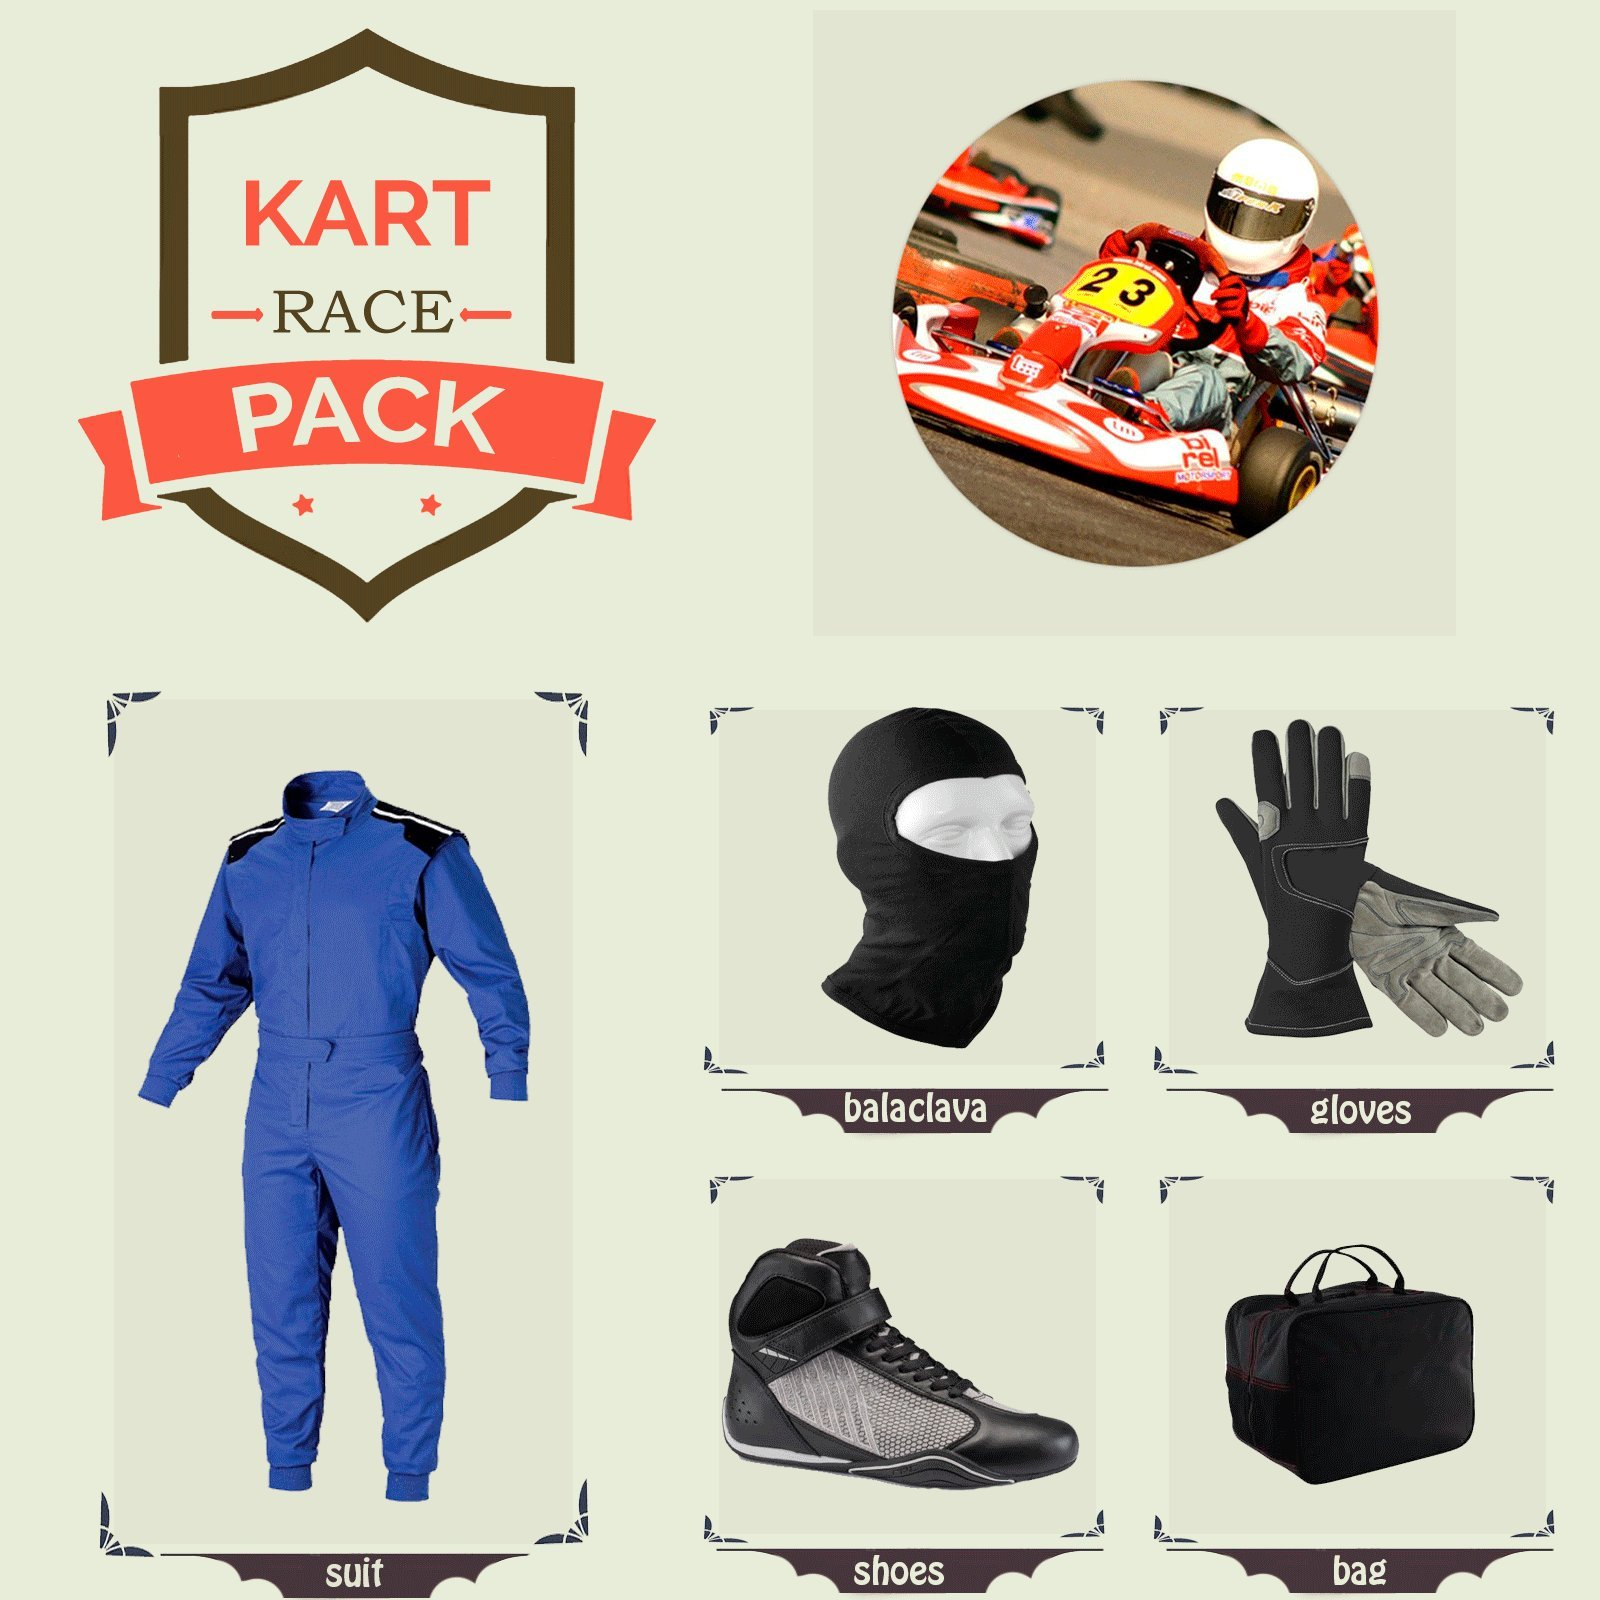 Sports Blue Go Kart Racing Suit Suit,Gloves,Balaclava and Shoes free bag - Blue With Black White Line